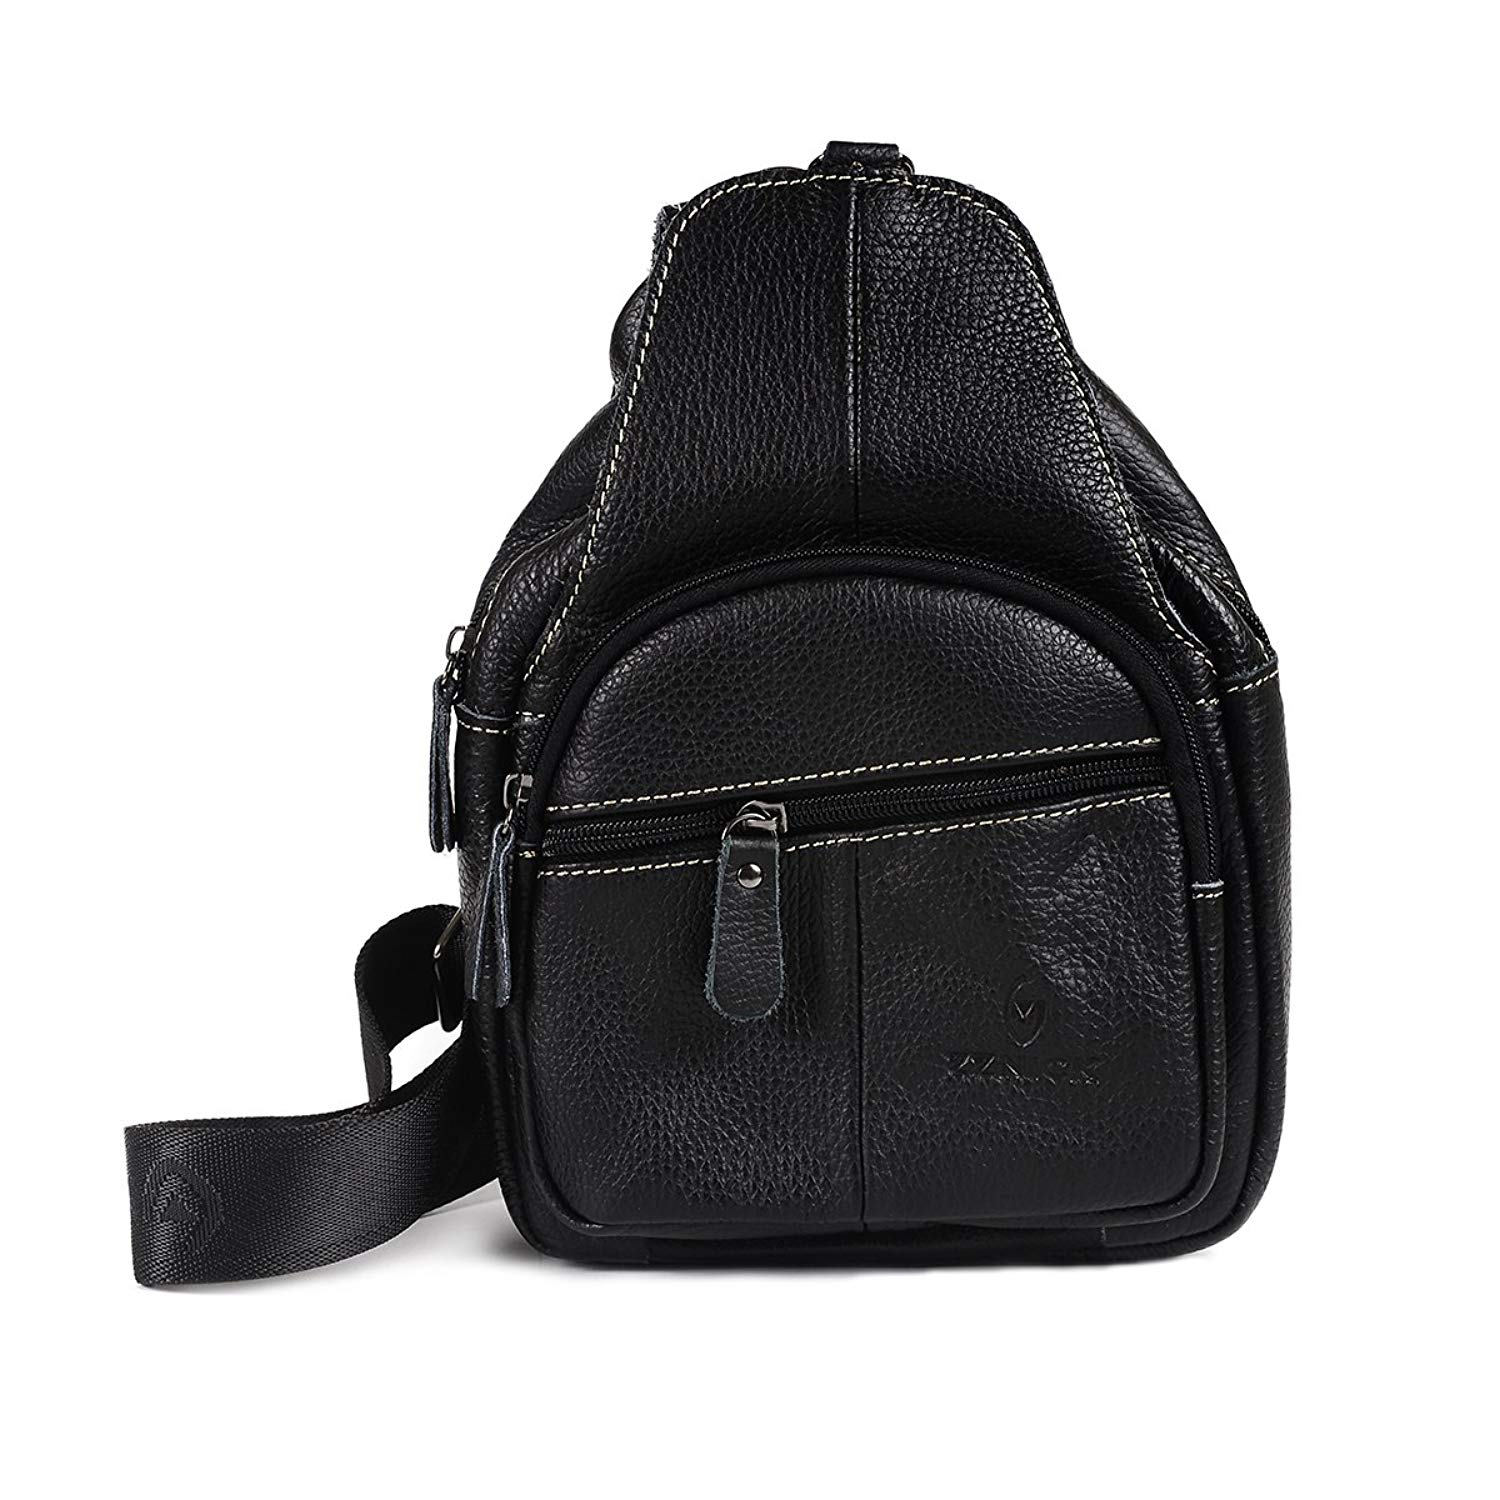 352a89adfd3 Get Quotations · 7Smile Cowhide Leather Sling Bag Chest Shoulder Backpack  Crossbody Bags for Men Women Travel Outdoors